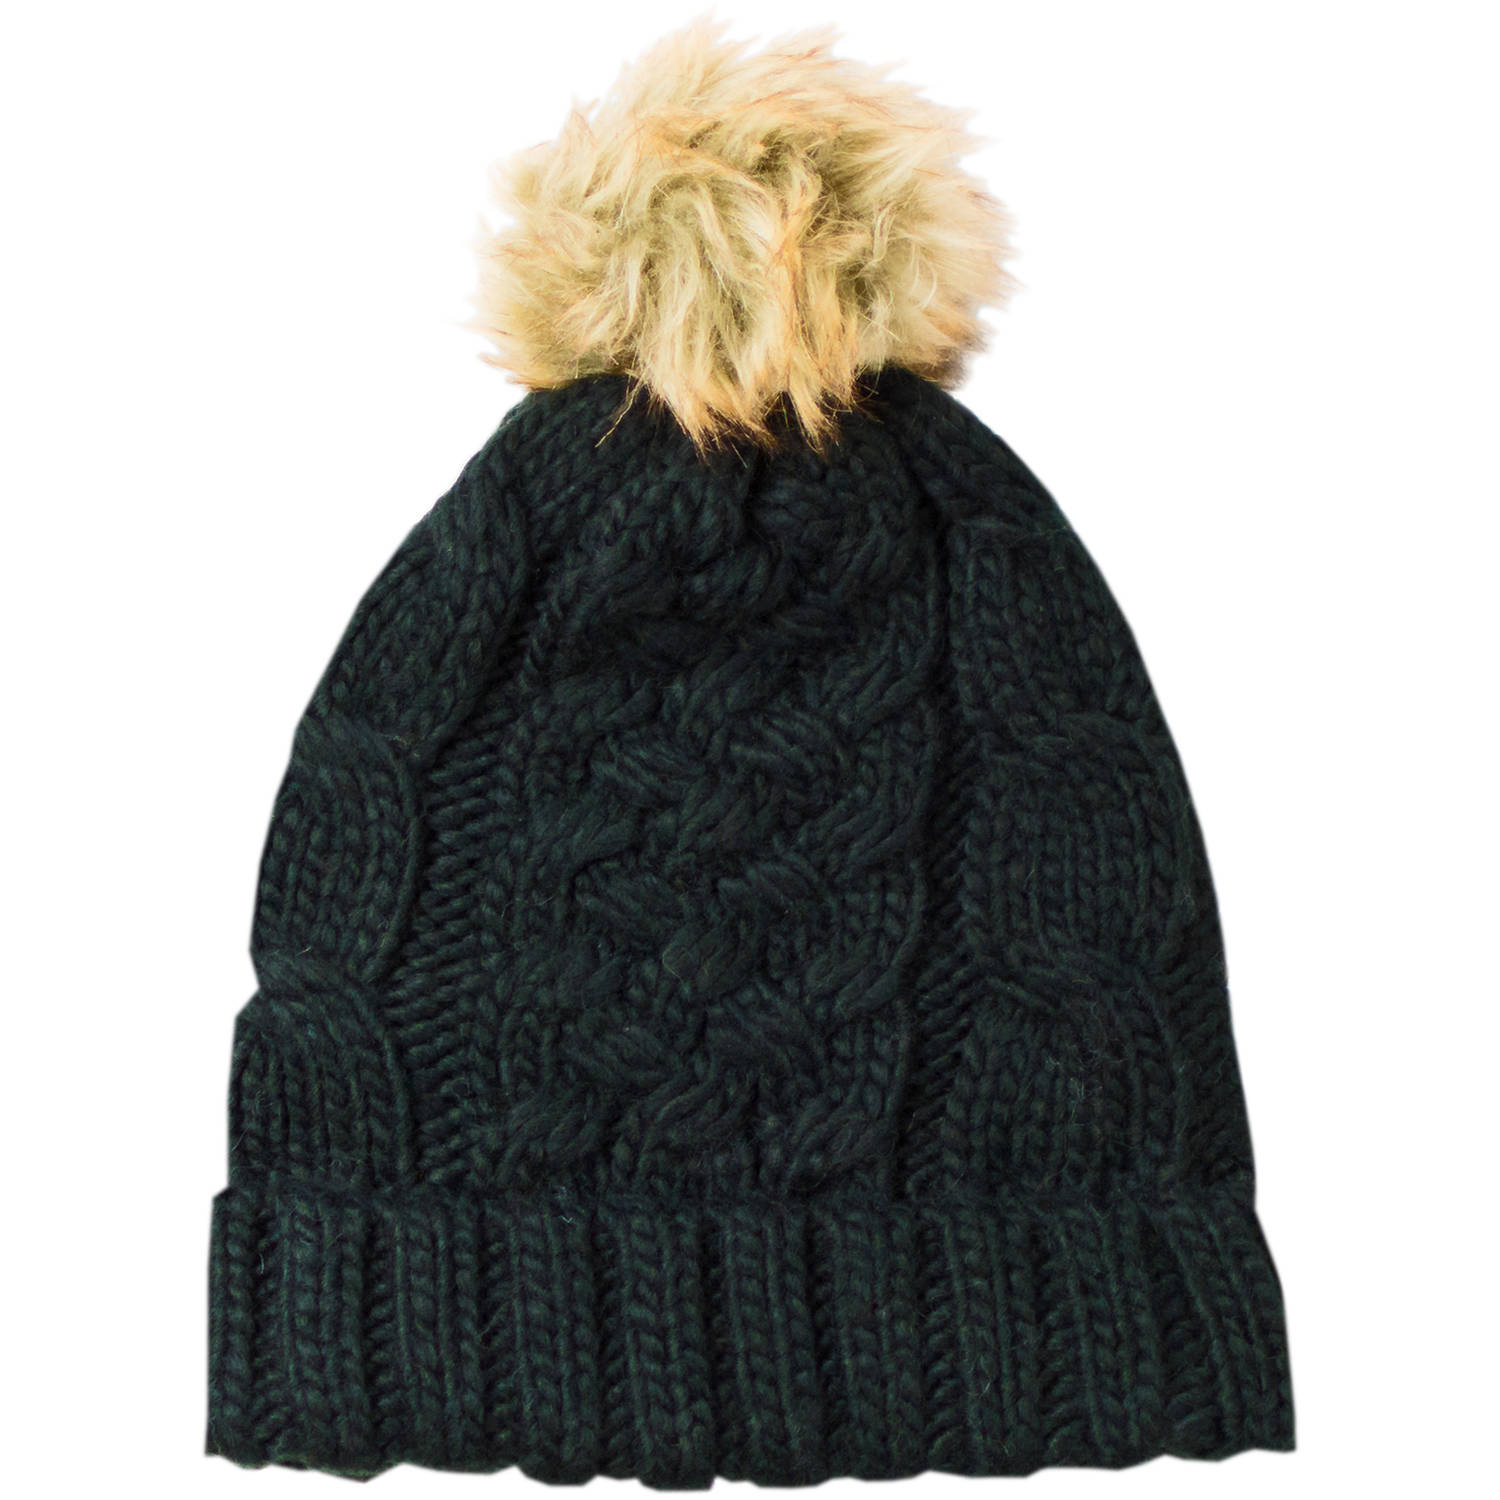 Faded Glory Women's Cable Knit Pom Beanie